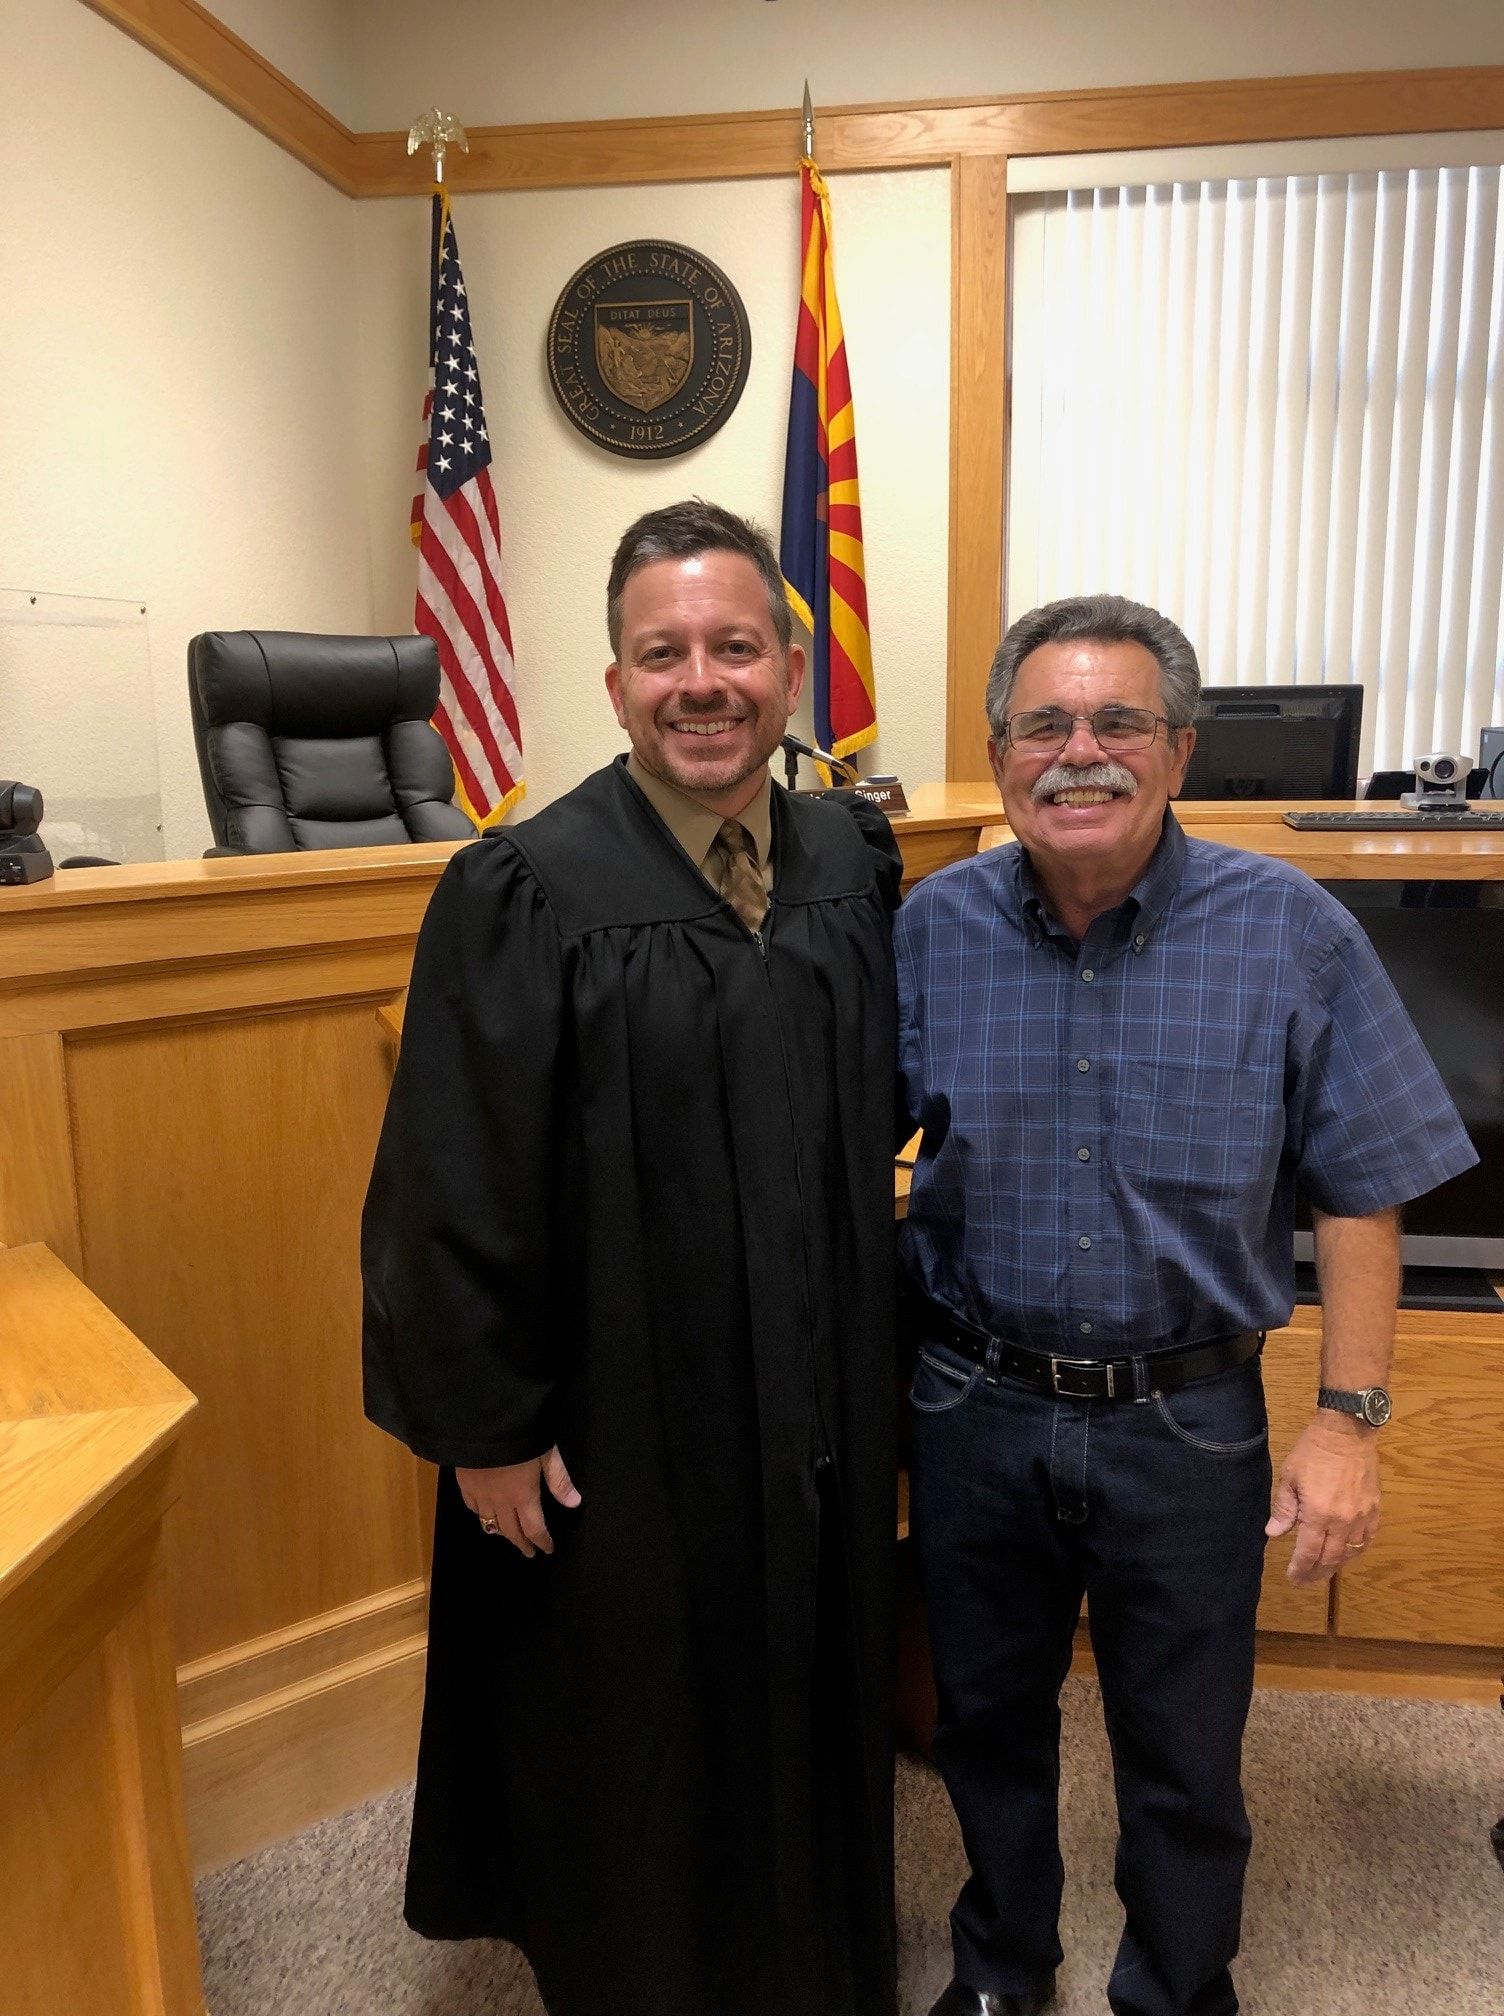 Veterans Treatment Court Mentor Inducted into AZHOF